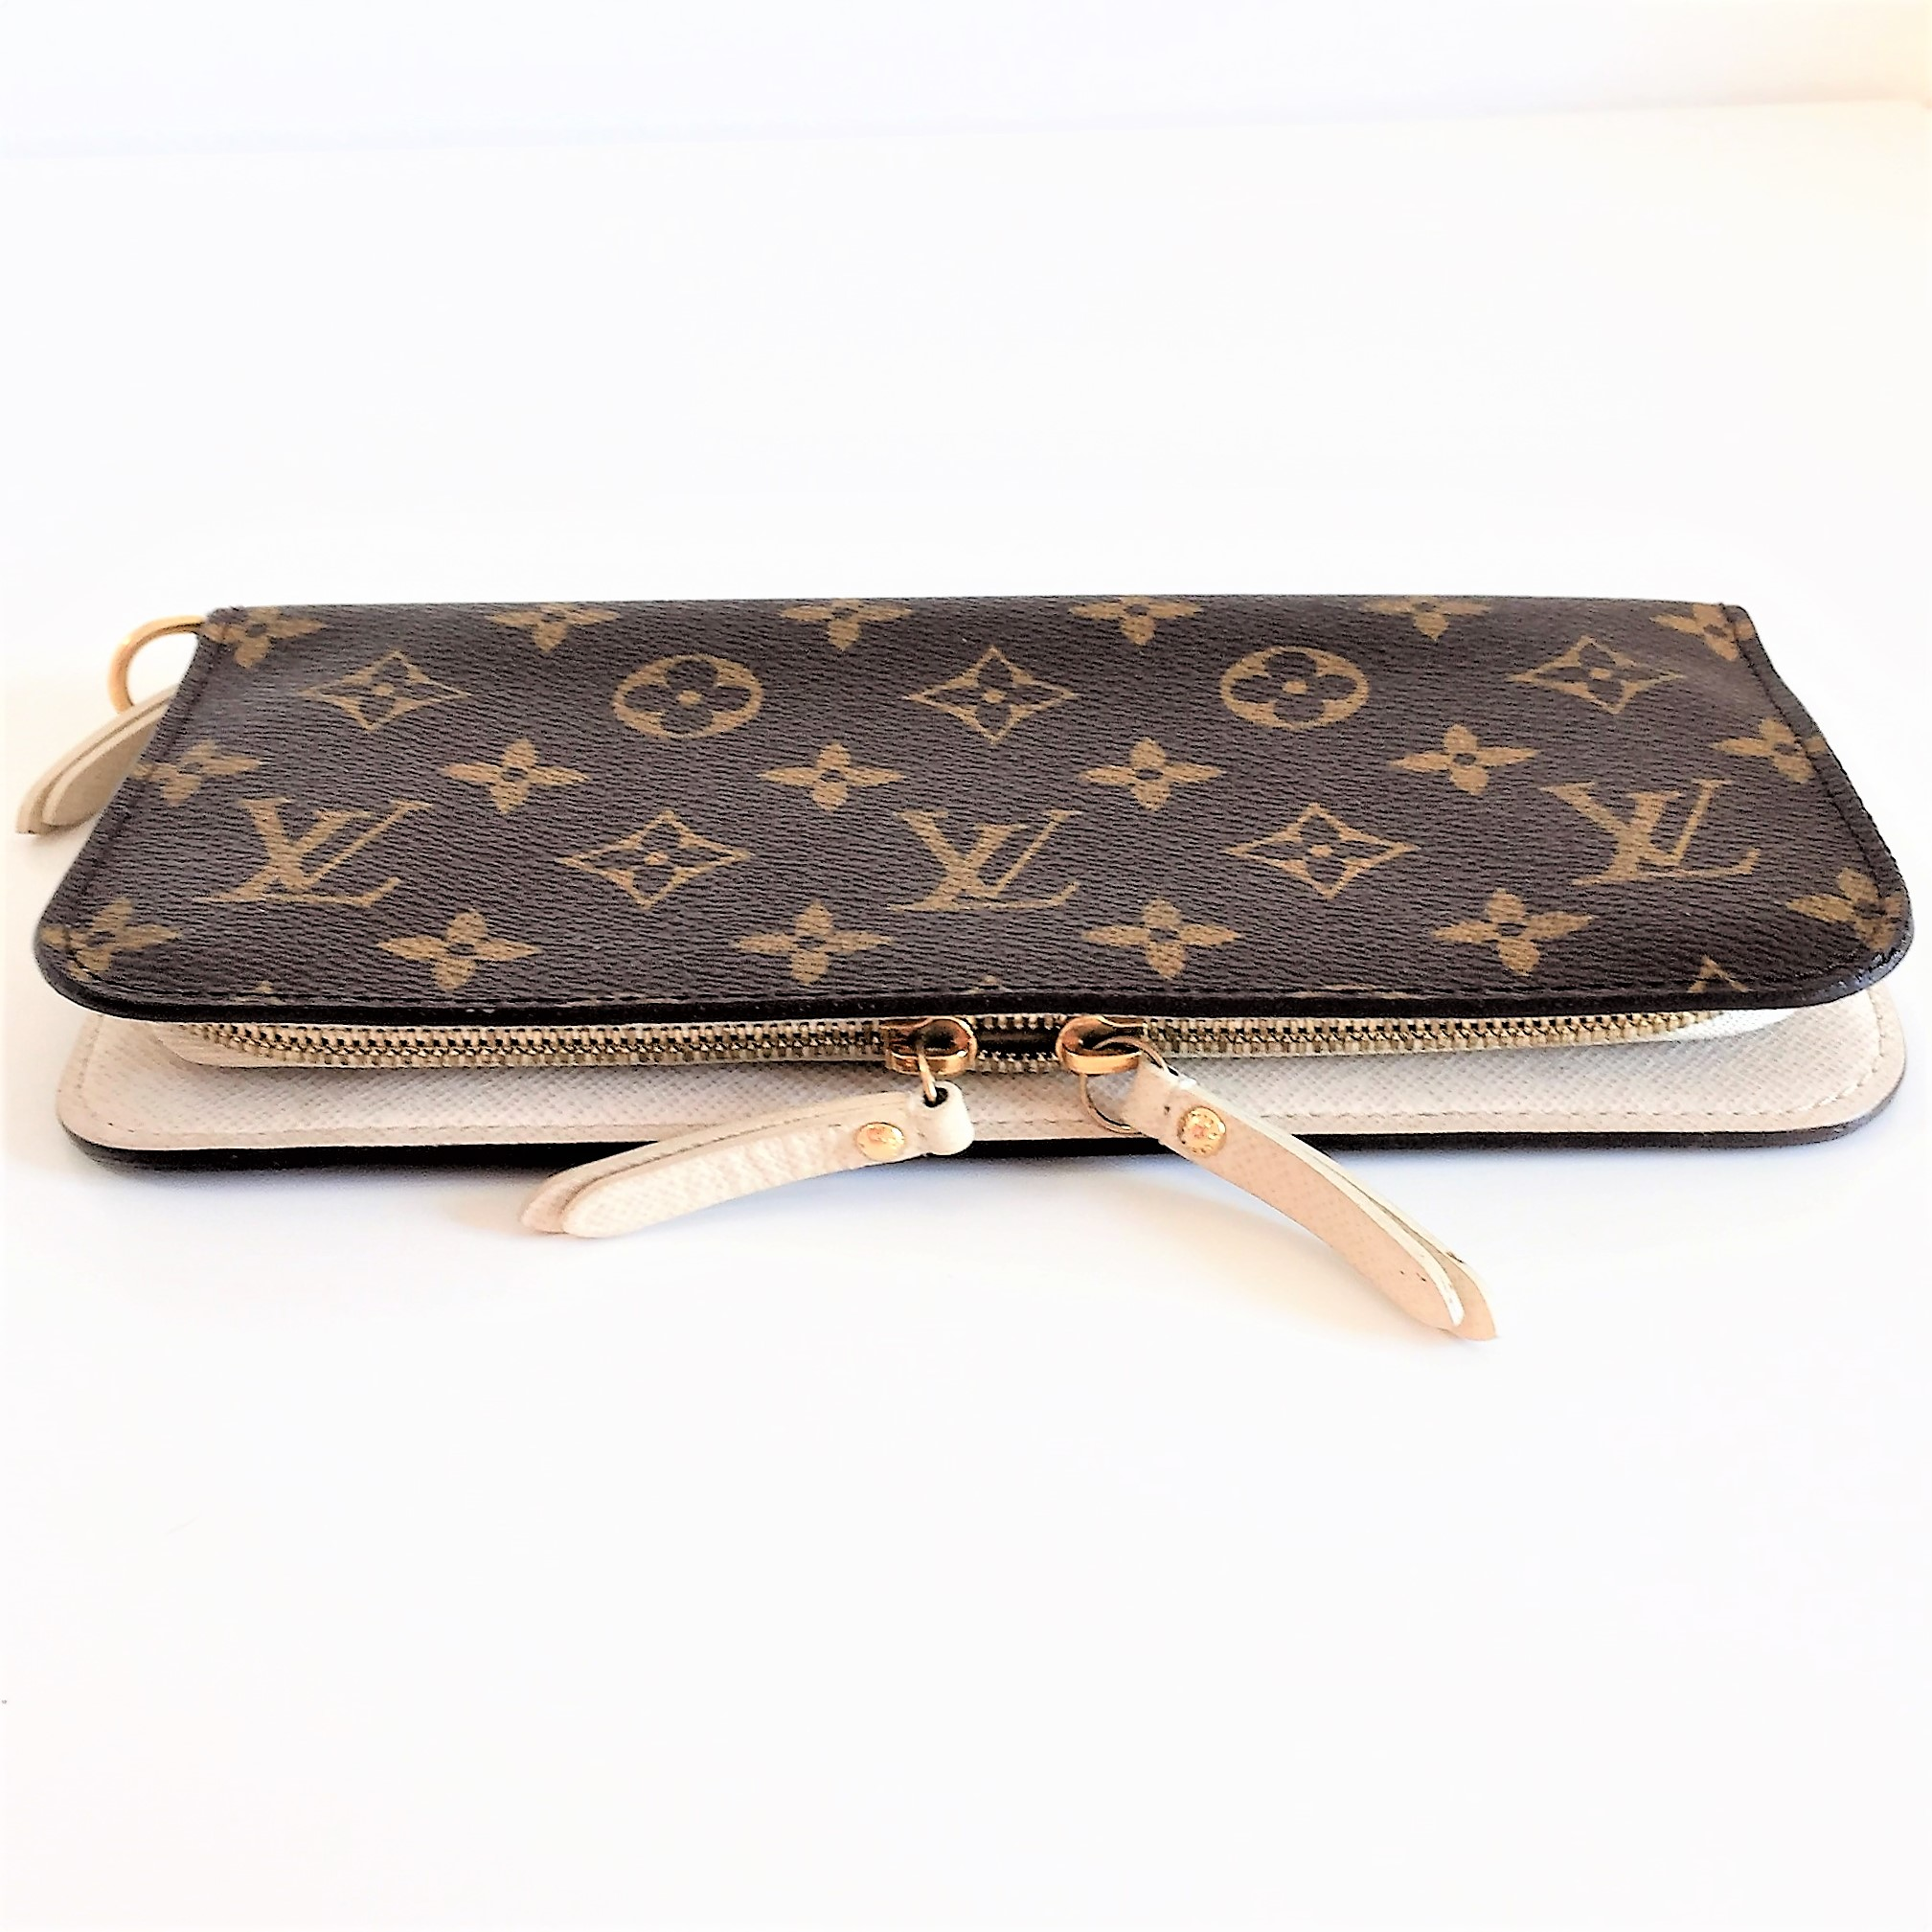 Borse Firmate : Louis vuitton wallet insolite made in lv monogram canvas